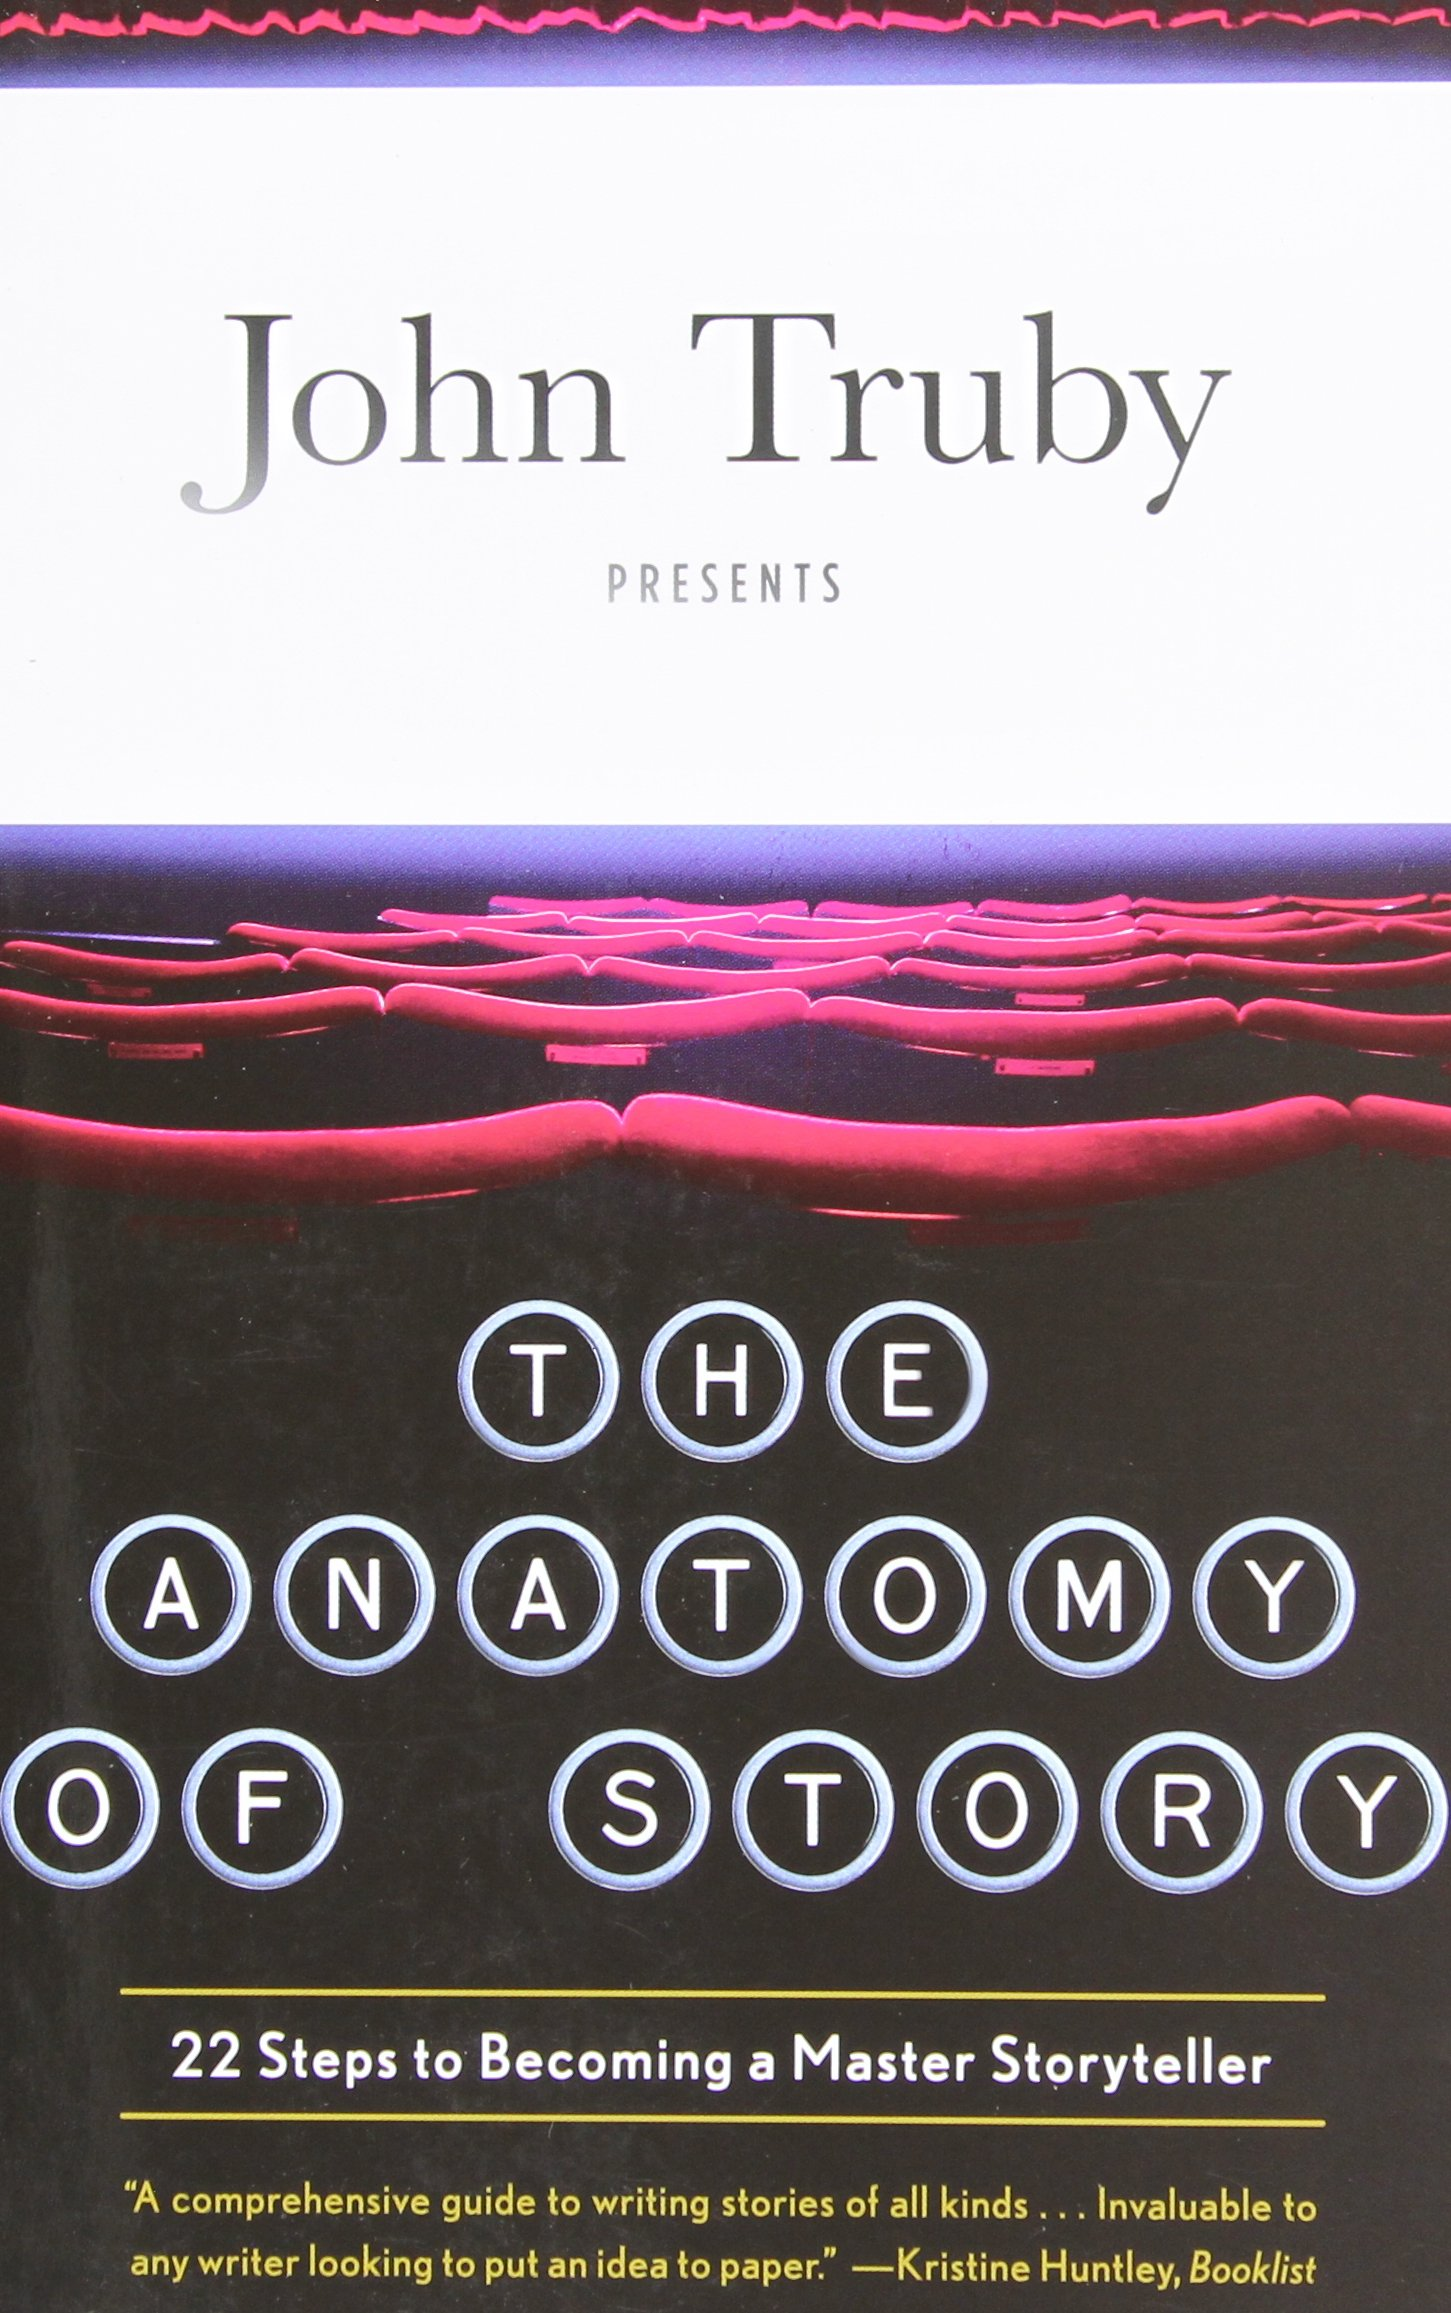 The Anatomy of Story: 22 Steps to Becoming a Master Storyteller: Truby, John:  8601200418156: Amazon.com: Books